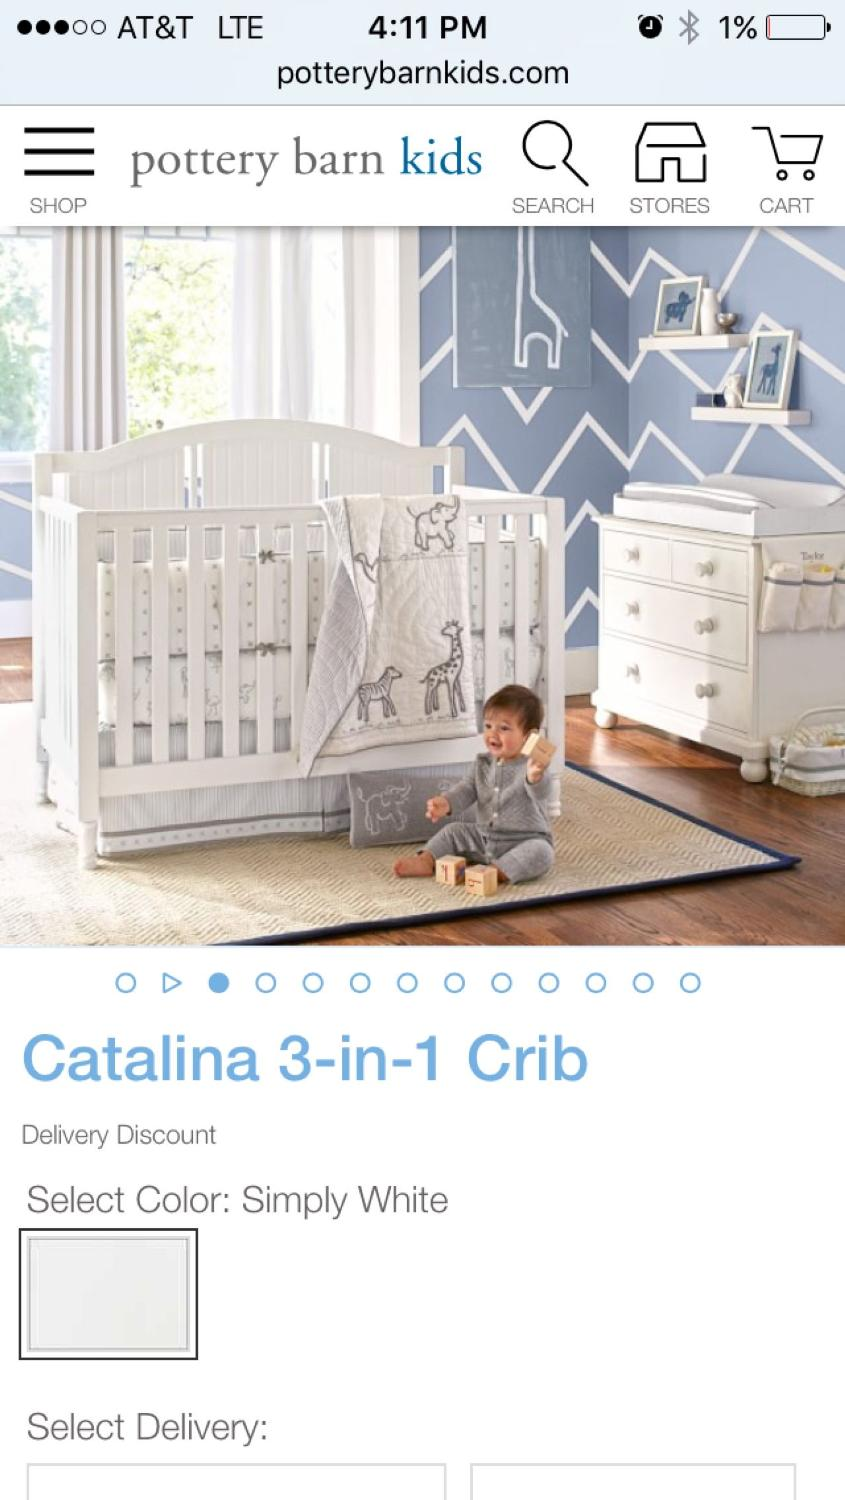 Crib for sale in fort lauderdale fl - Best This Convertible White Pottery Barn Crib This Convertible White Mod Crib This White Pottery Barn Changing Table 150 Each All Parts Incl For Sale In